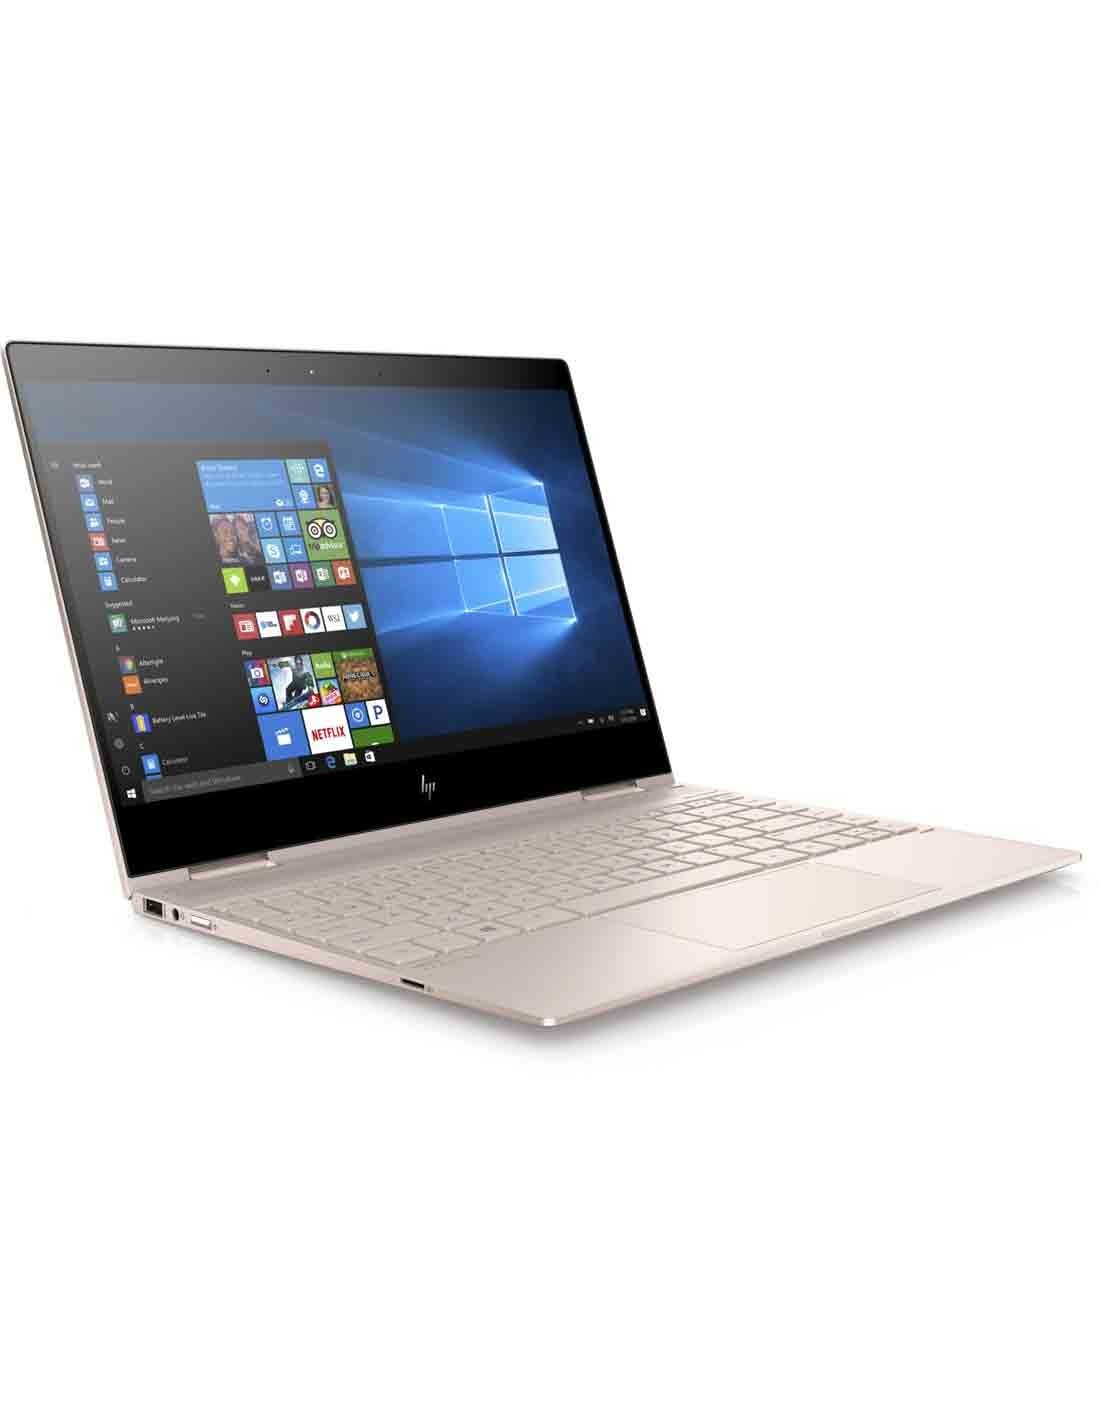 HP Spectre x360 Convertible 13-w000ne Buy Online at an Cheap Price in Dubai UAE